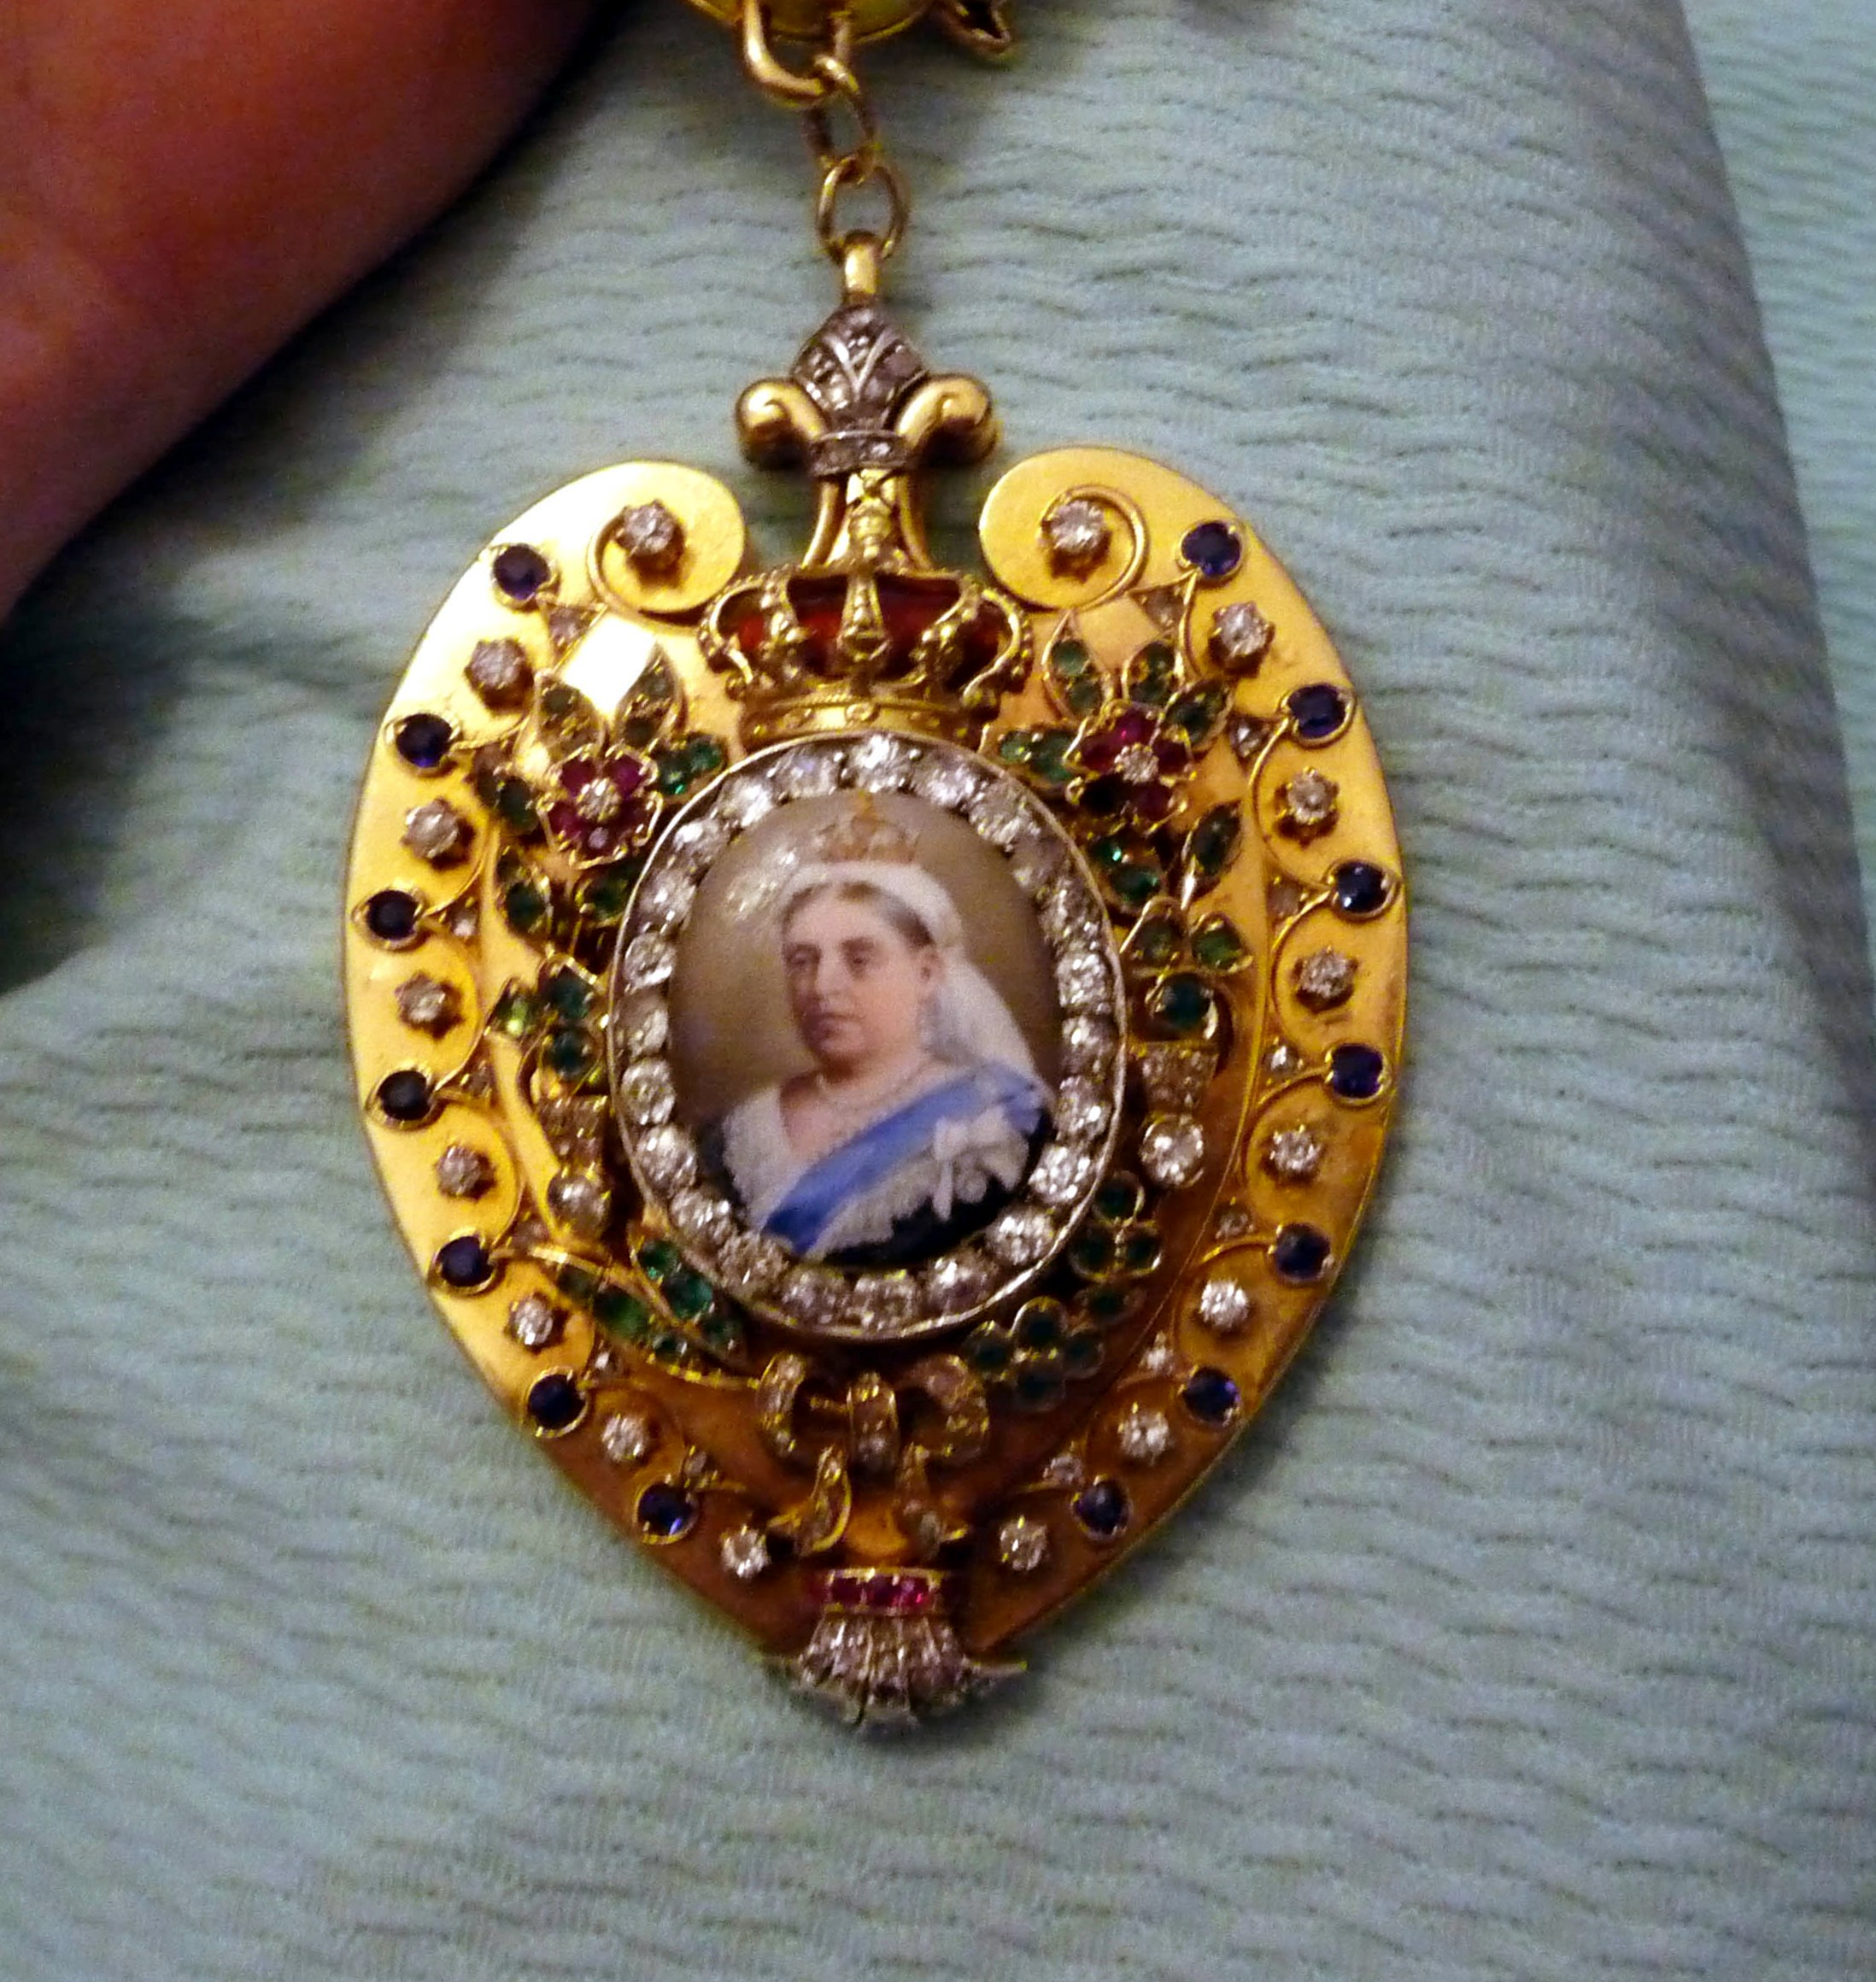 this chain of office is worn by the Lady Mayoress during evening functions